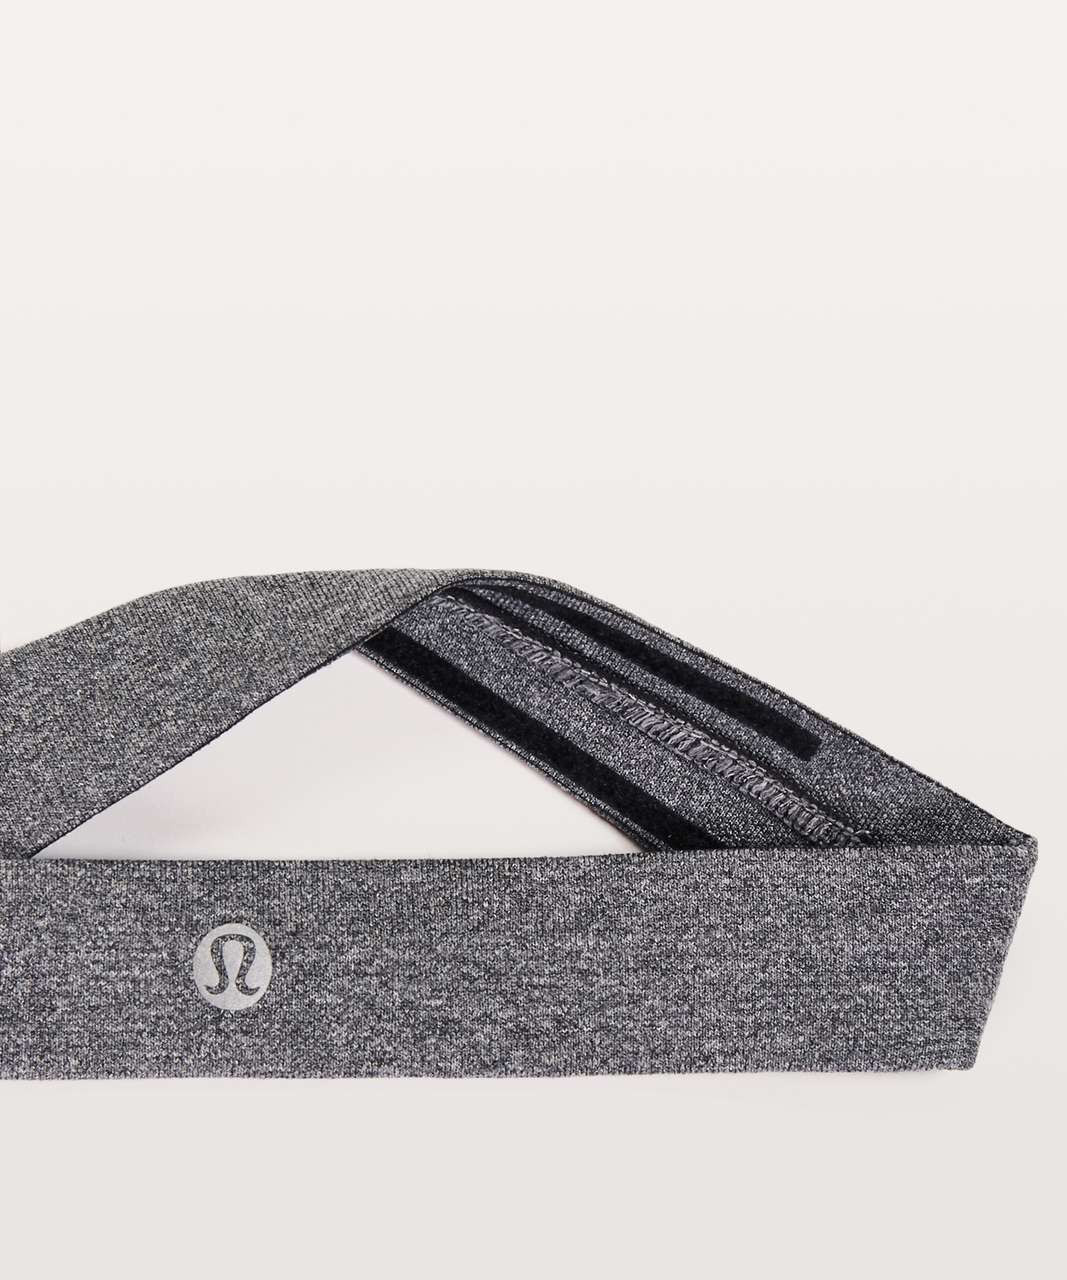 Lululemon Cardio Cross Trainer Headband - Black / White (First Release)